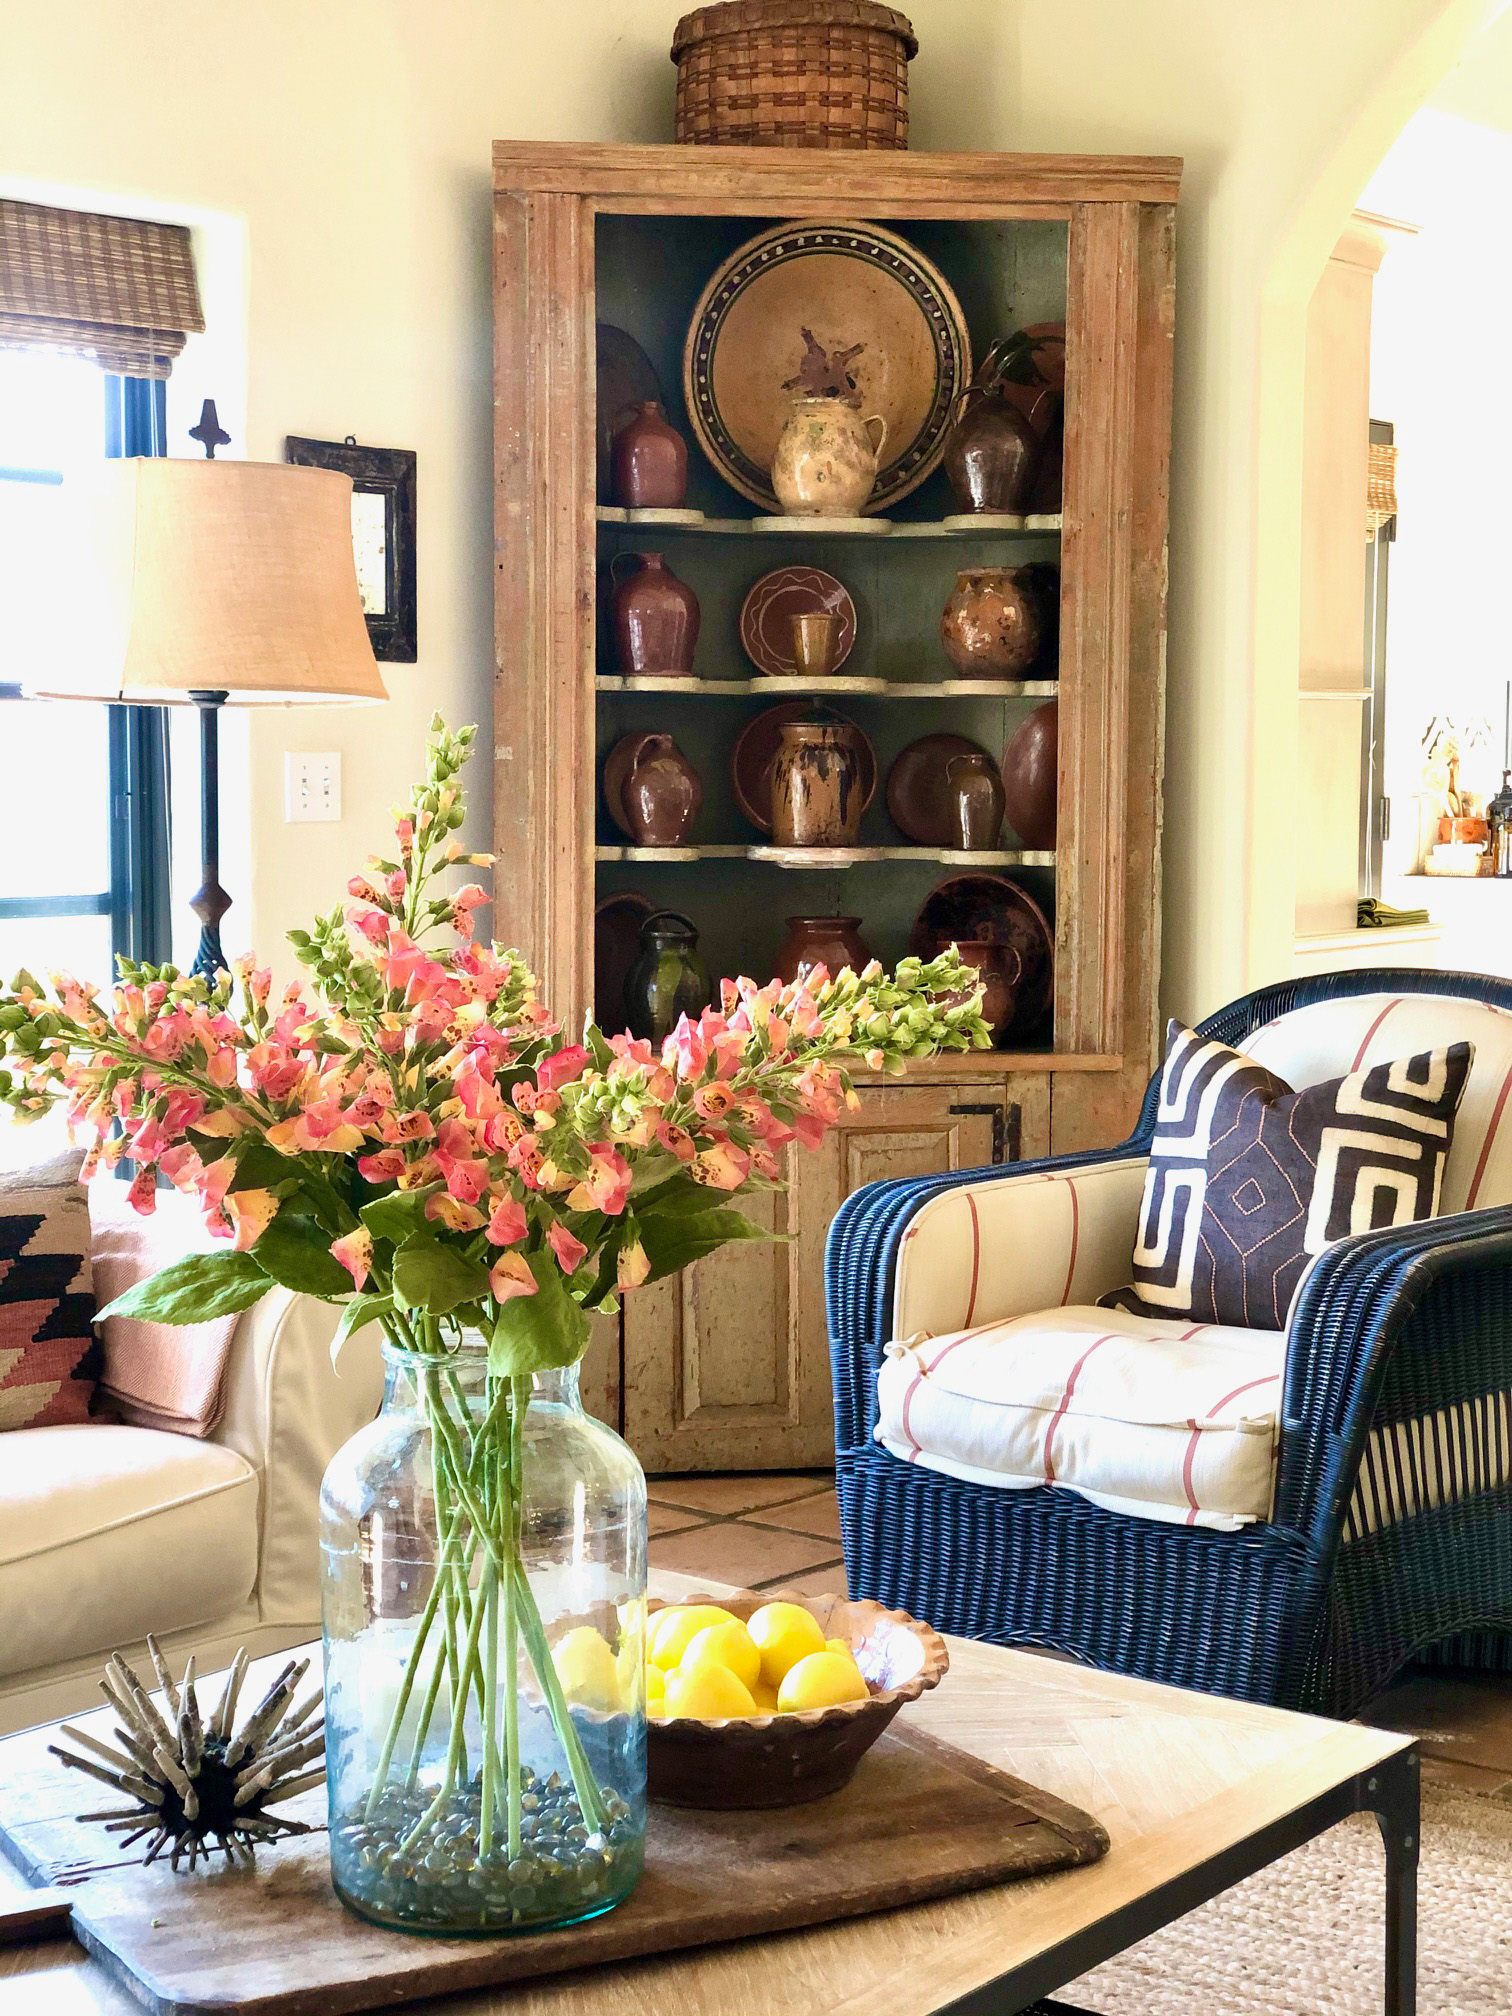 cindy hattersley's family room with corner cupboard